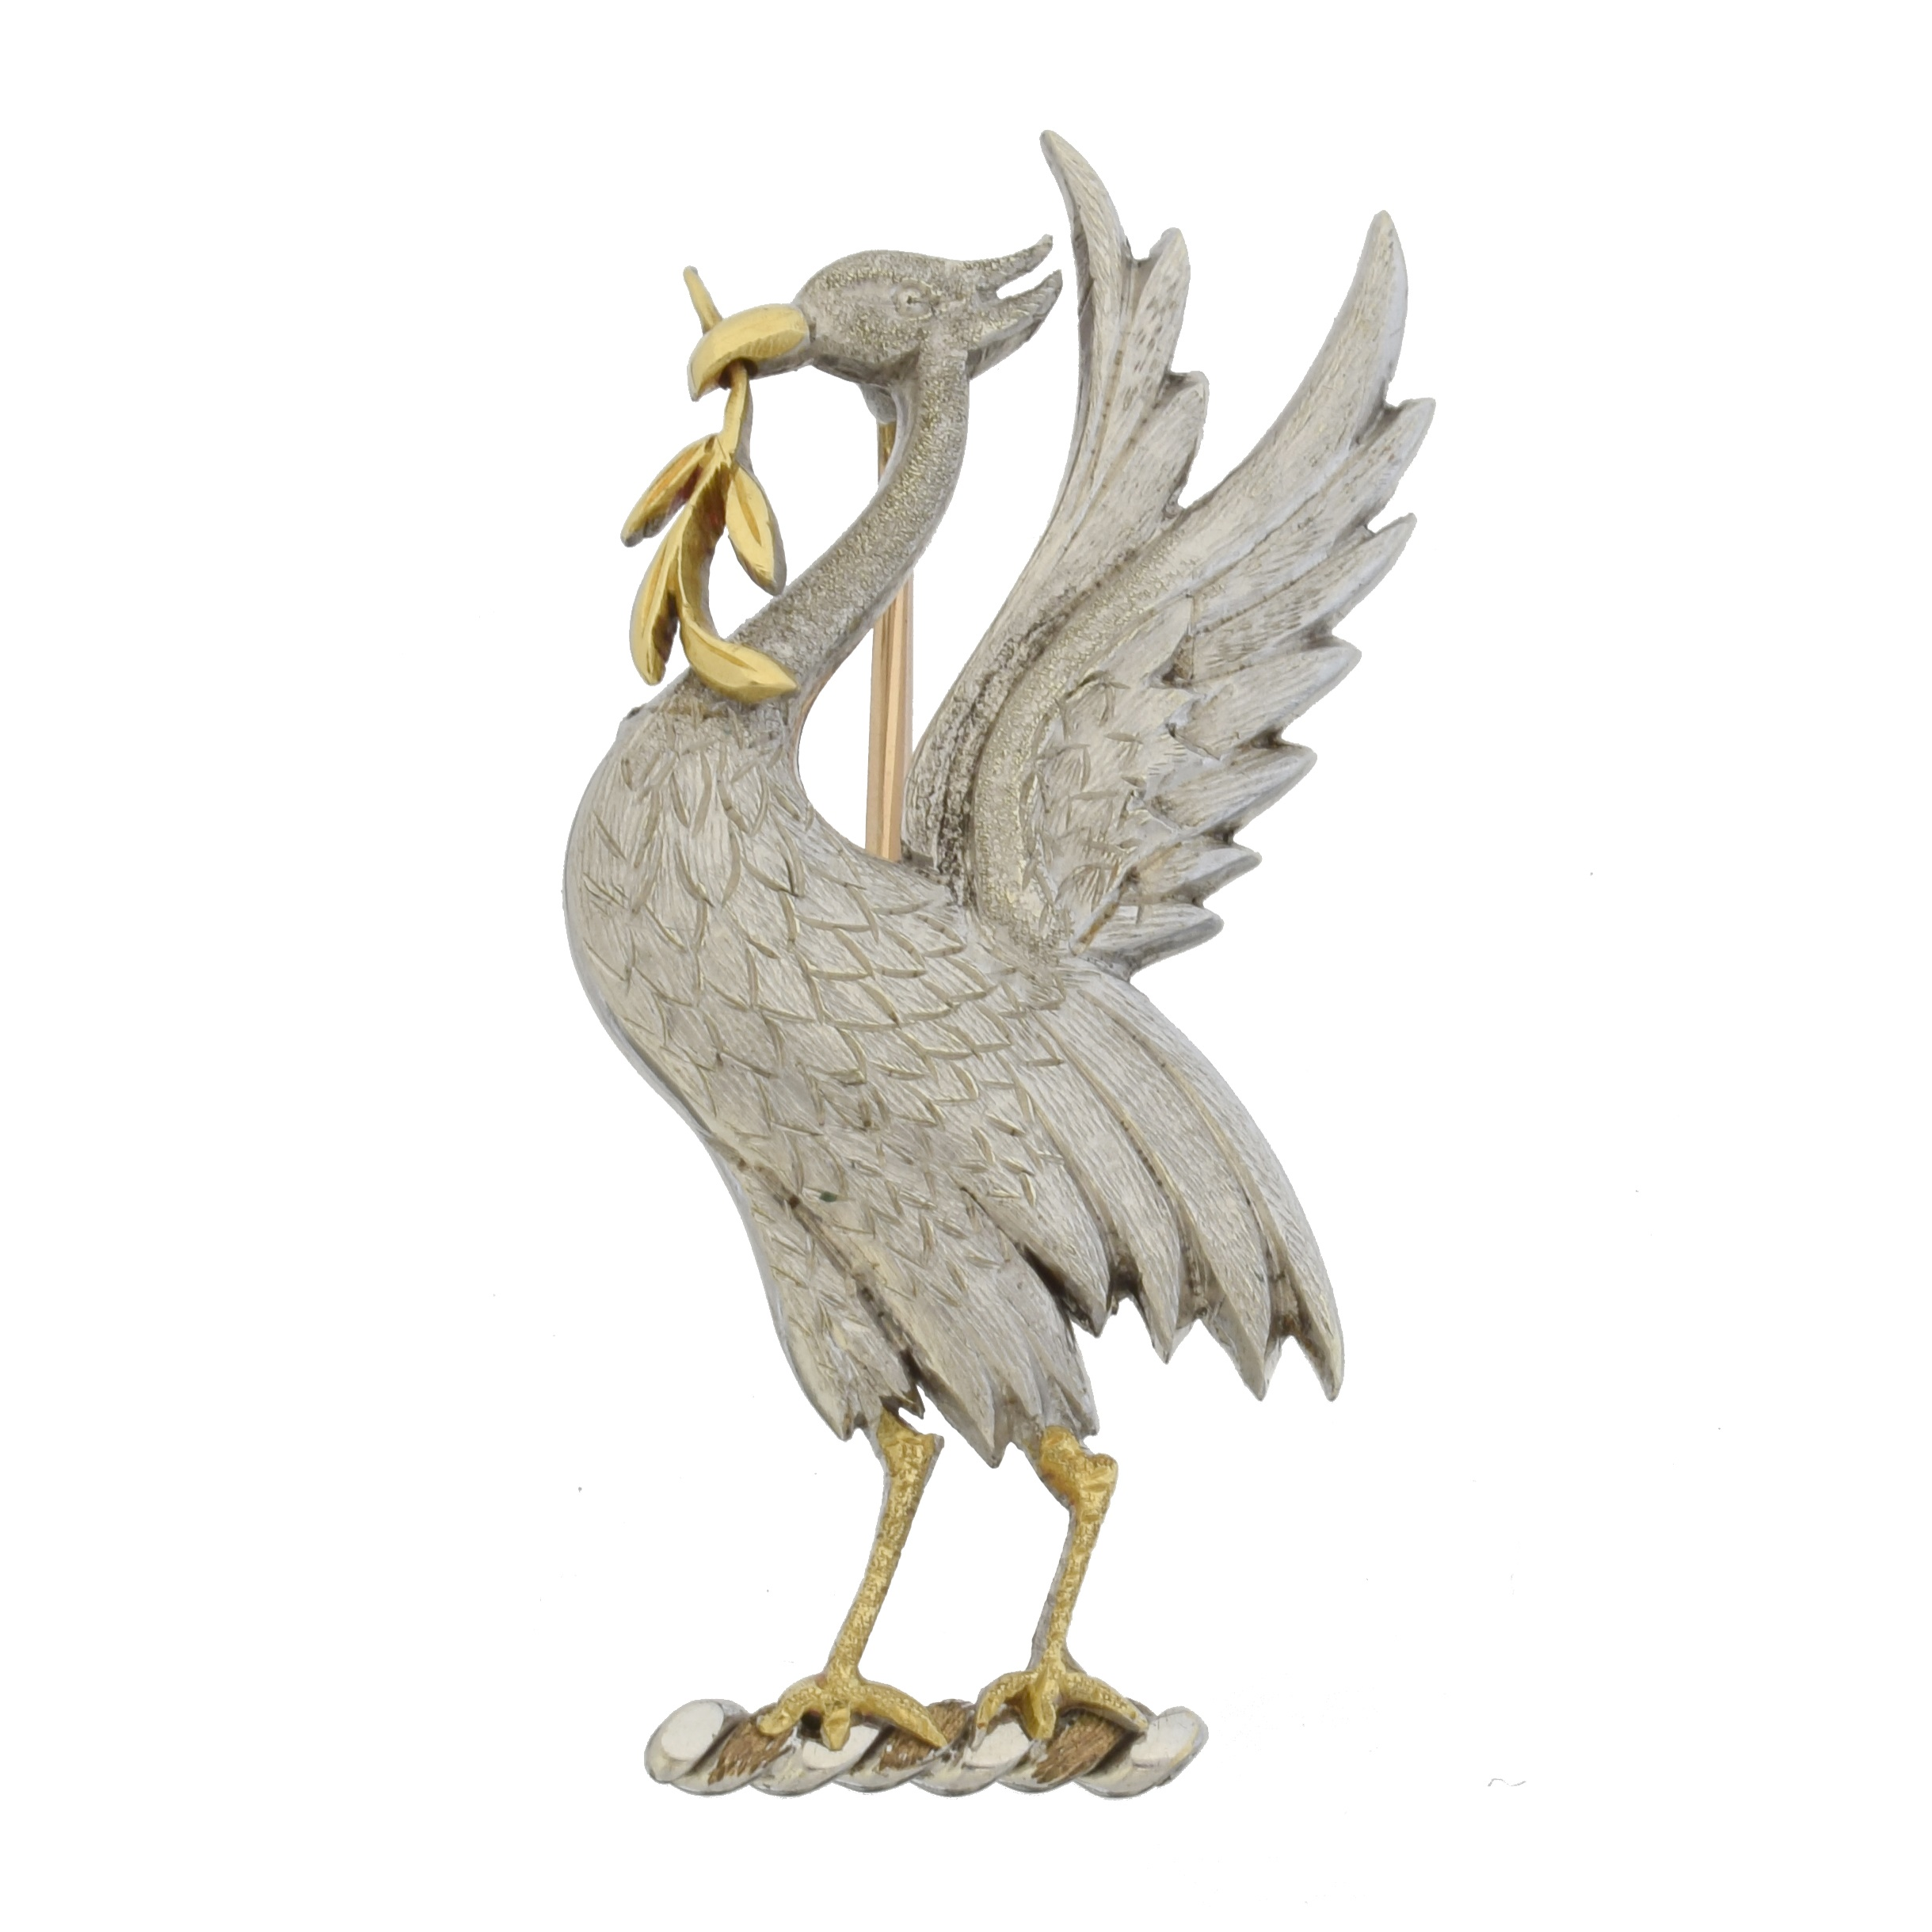 A 9ct gold Liverbird brooch by Alabaster & Wilson, realistically modelled in a bi-colour design, hallmarks for Alabaster & Wilson, Birmingham, 1943, length 4.3cm, gross weight 9.5g. With Boodle & Dunthorne box.  Commissioned and made by Alabaster & Wilson as a presentation piece to Margaret Hall, Lady Mayoress of Liverpool from 1935-6. Further Liver Bird brooches by Alabaster & Wilson in varying designs were retailed by Boodle & Dunthorne in the 1950s.